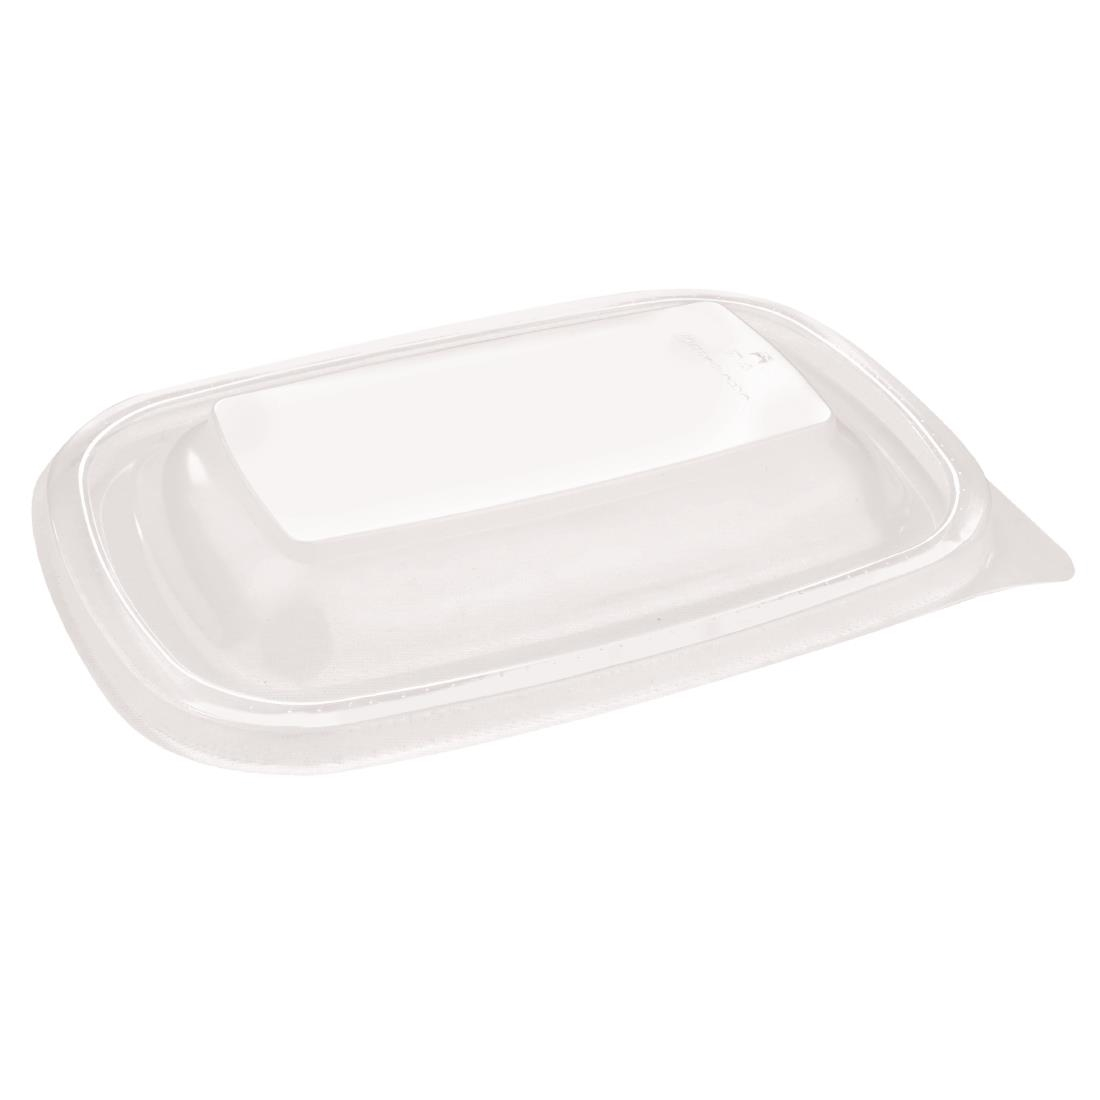 Image of Fastpac Small Rectangular Food Container Lids 500ml / 17oz